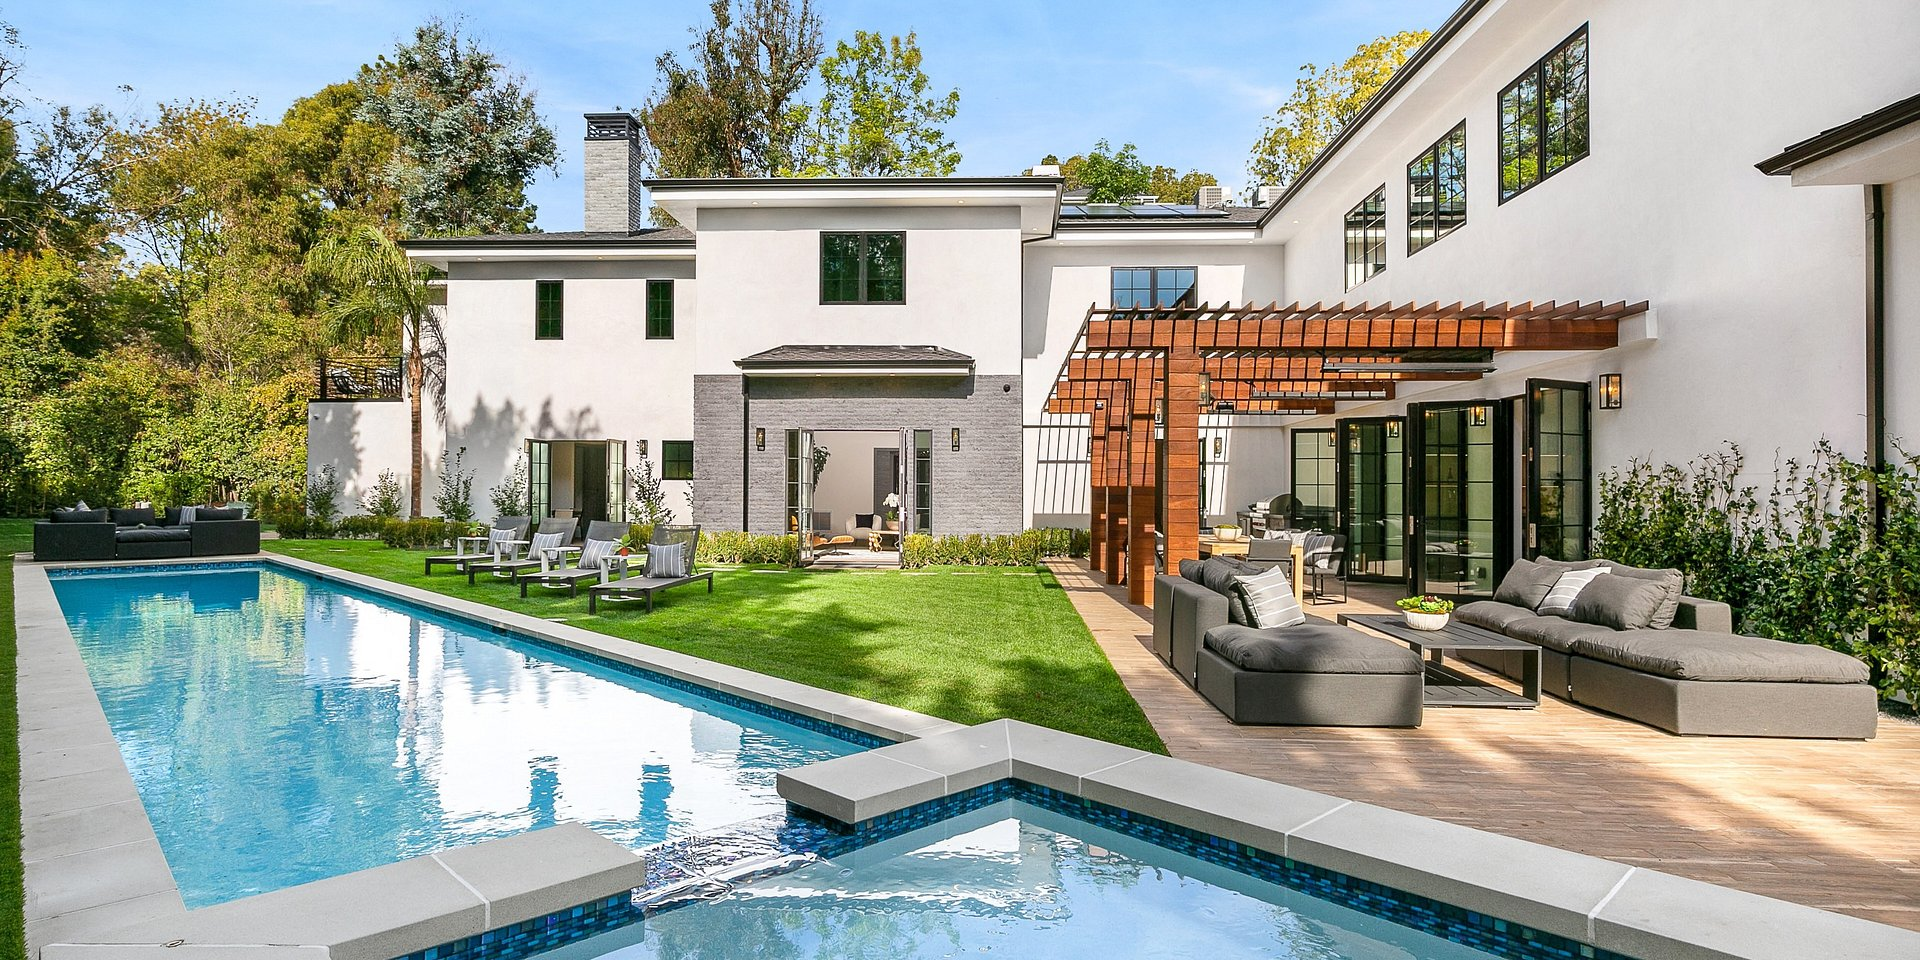 Coldwell Banker Realty Lists a New Los Angeles Property for $13,995,000 Million